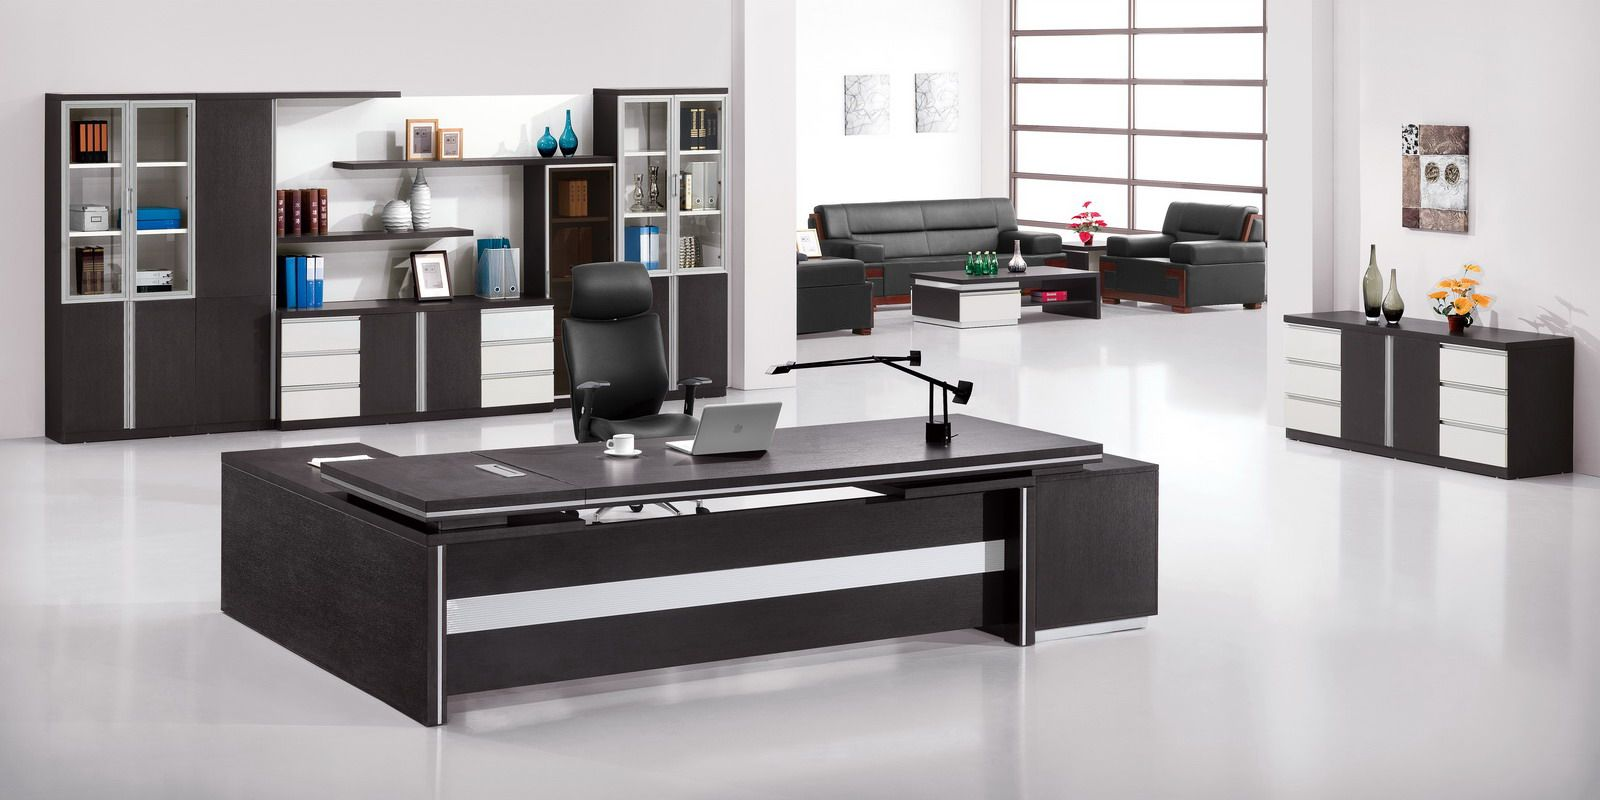 Modern Office Cabinet Design 17 Best Images About Office On Pinterest  Office Furniture